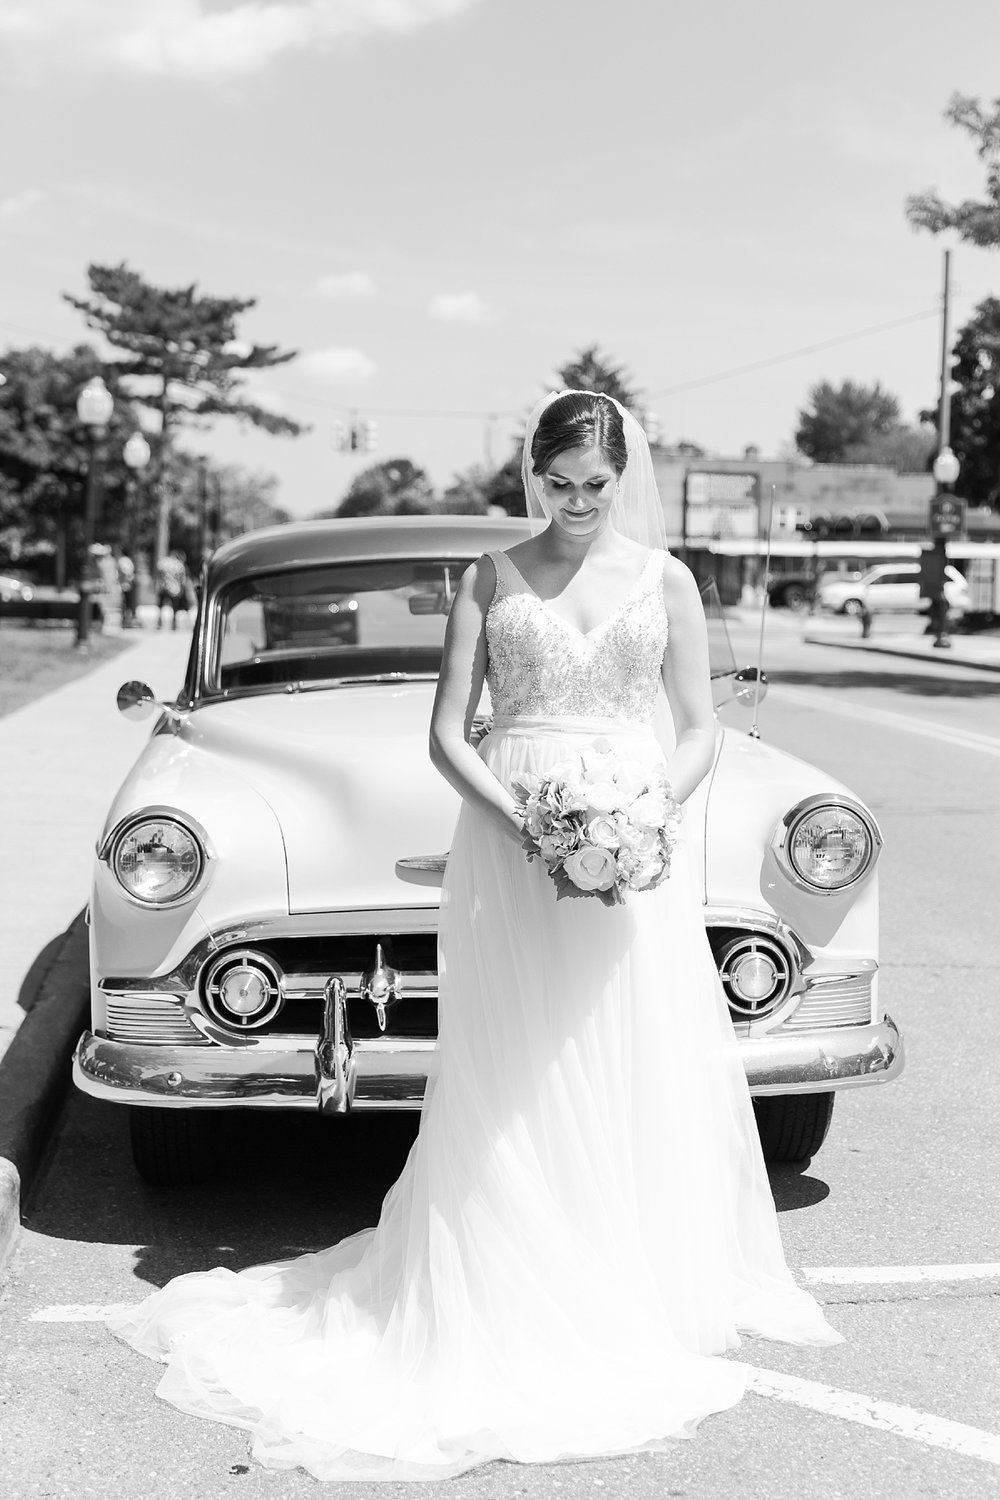 classic-intimate-fun-wedding-photos-at-the-meeting-house-grand-ballroom-in-plymouth-michigan-by-courtney-carolyn-photography_0041.jpg